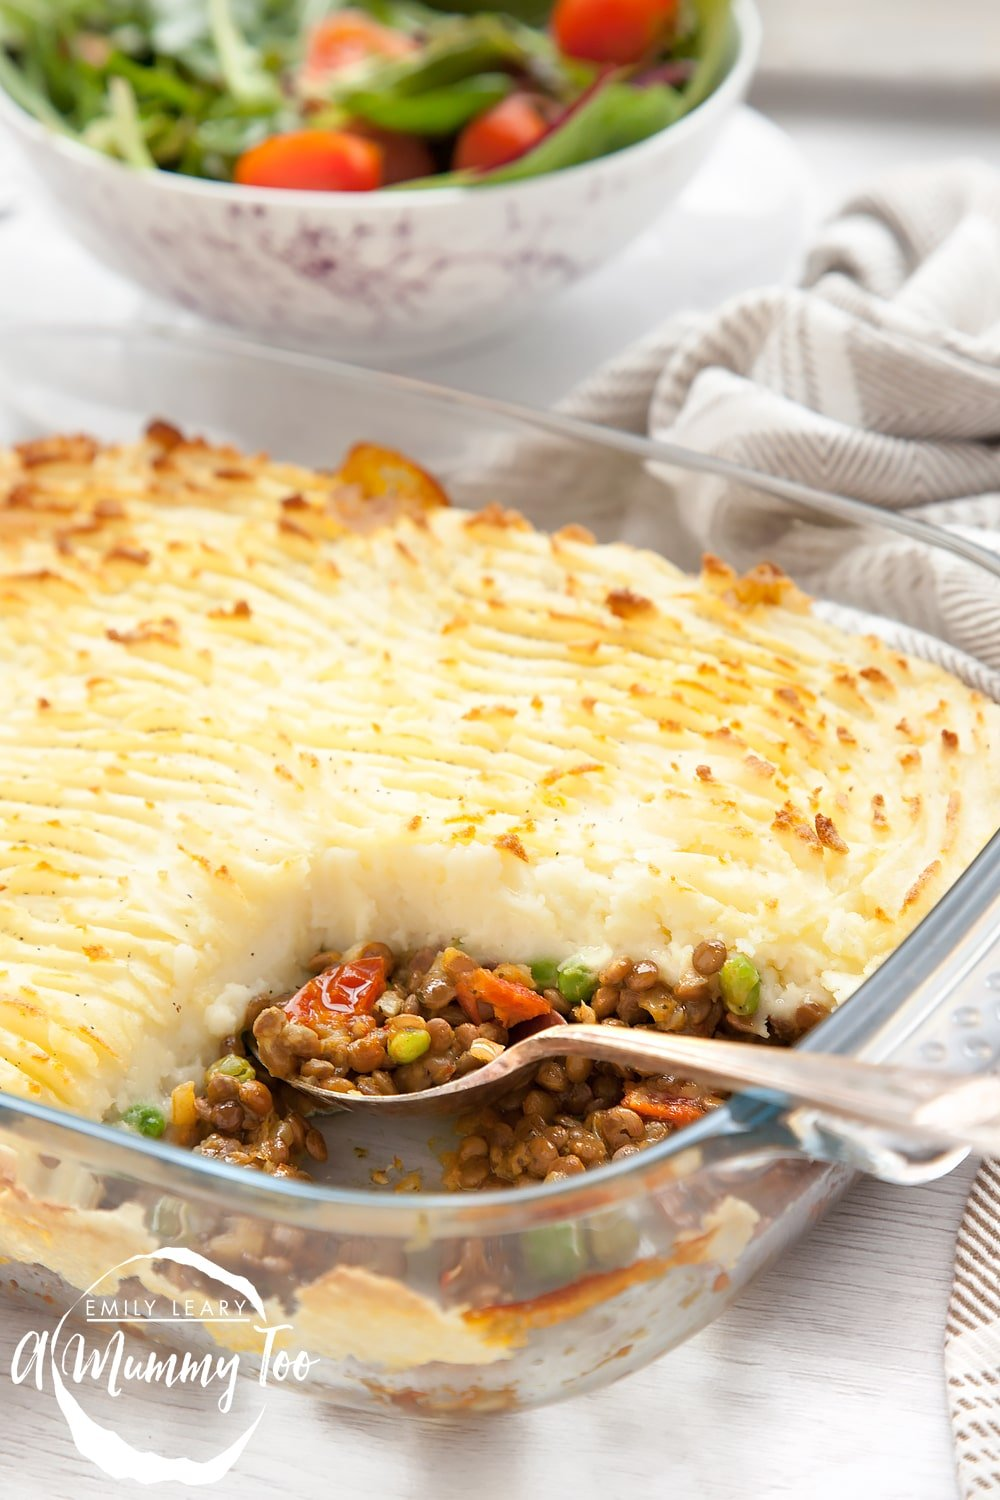 A simple vegetarian pie made with spicy lentils and a creamy mashed potato topping. This really clever recipe uses just THREE frozen products to put together a super quick, healthy and delicious meal.